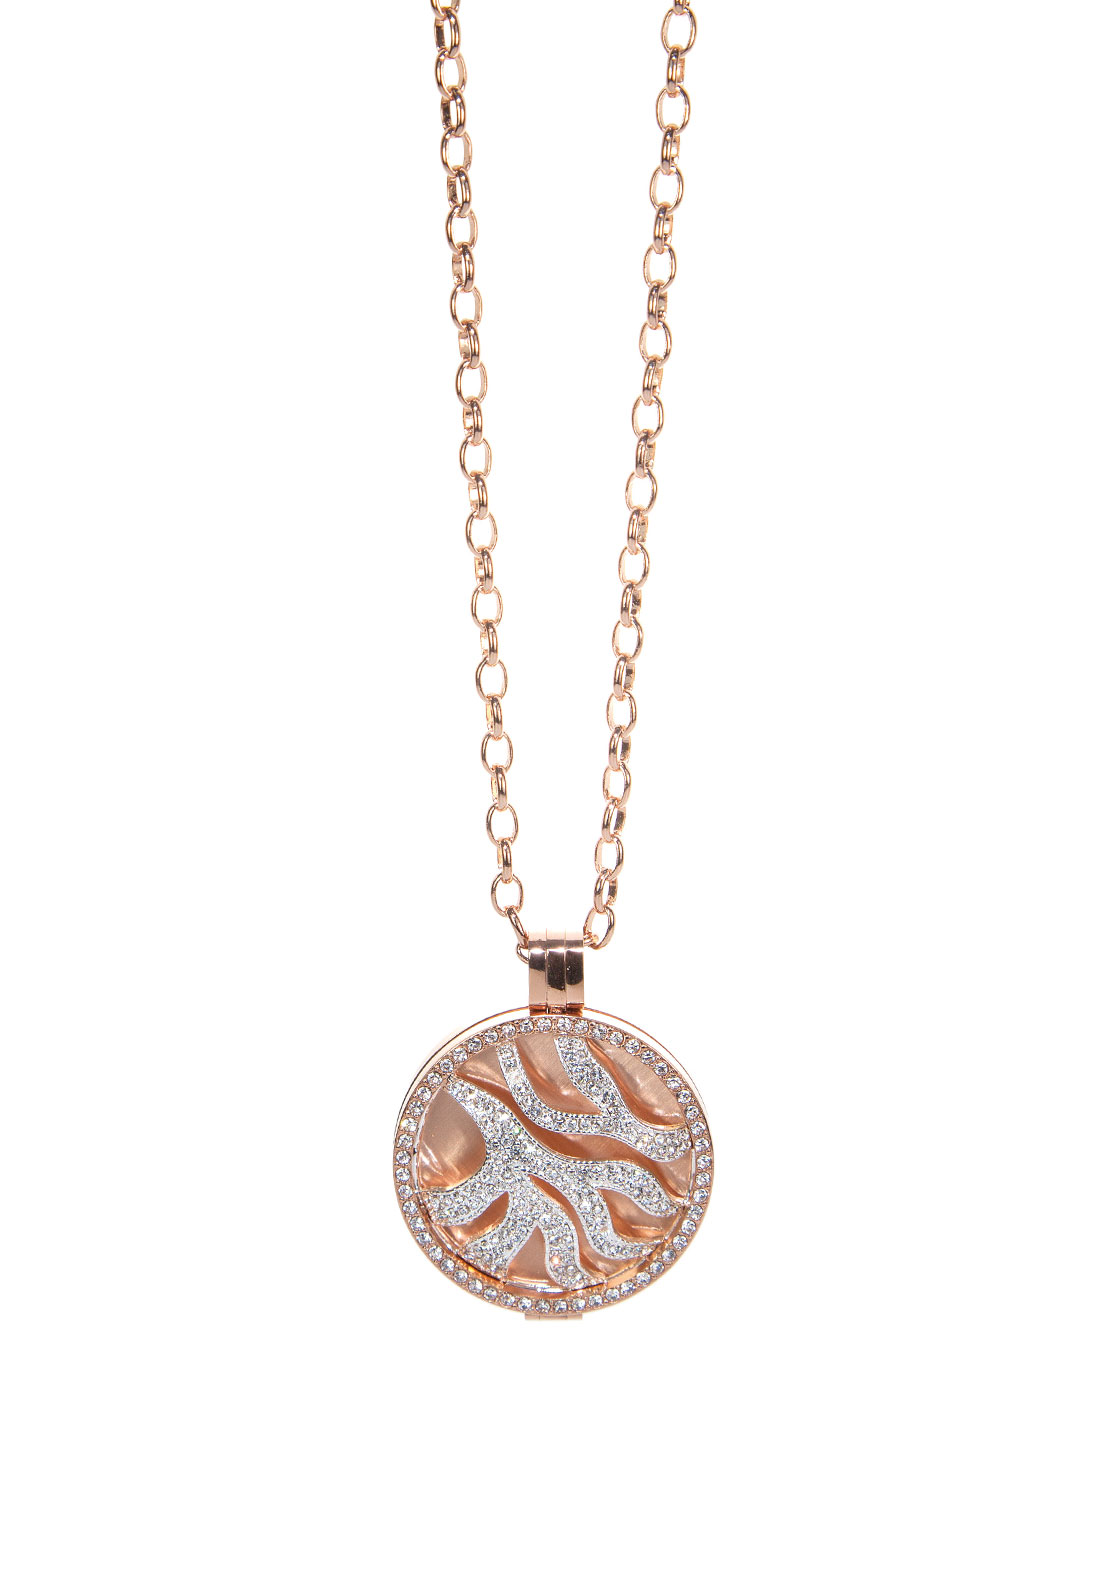 Absolute Jewellery Pave Coin Long Necklace